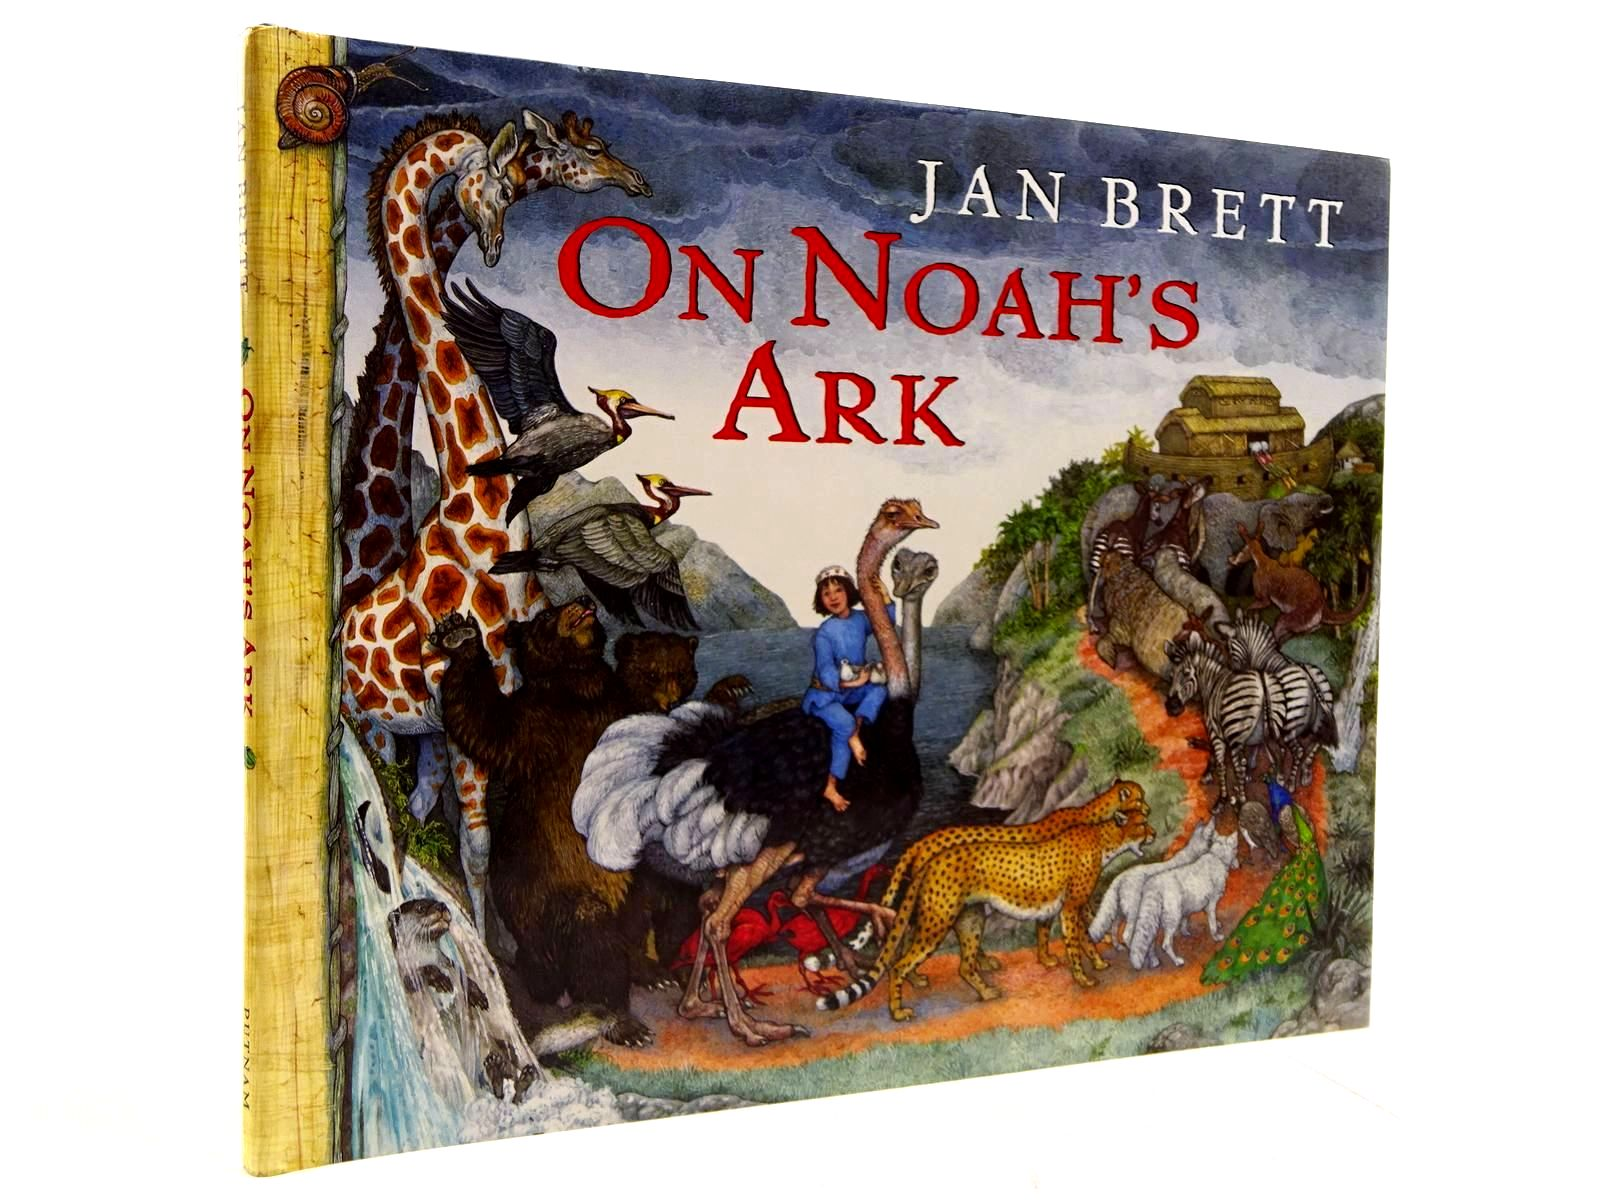 Photo of ON NOAH'S ARK written by Brett, Jan illustrated by Brett, Jan published by G.P. Putnam's Sons (STOCK CODE: 2130737)  for sale by Stella & Rose's Books